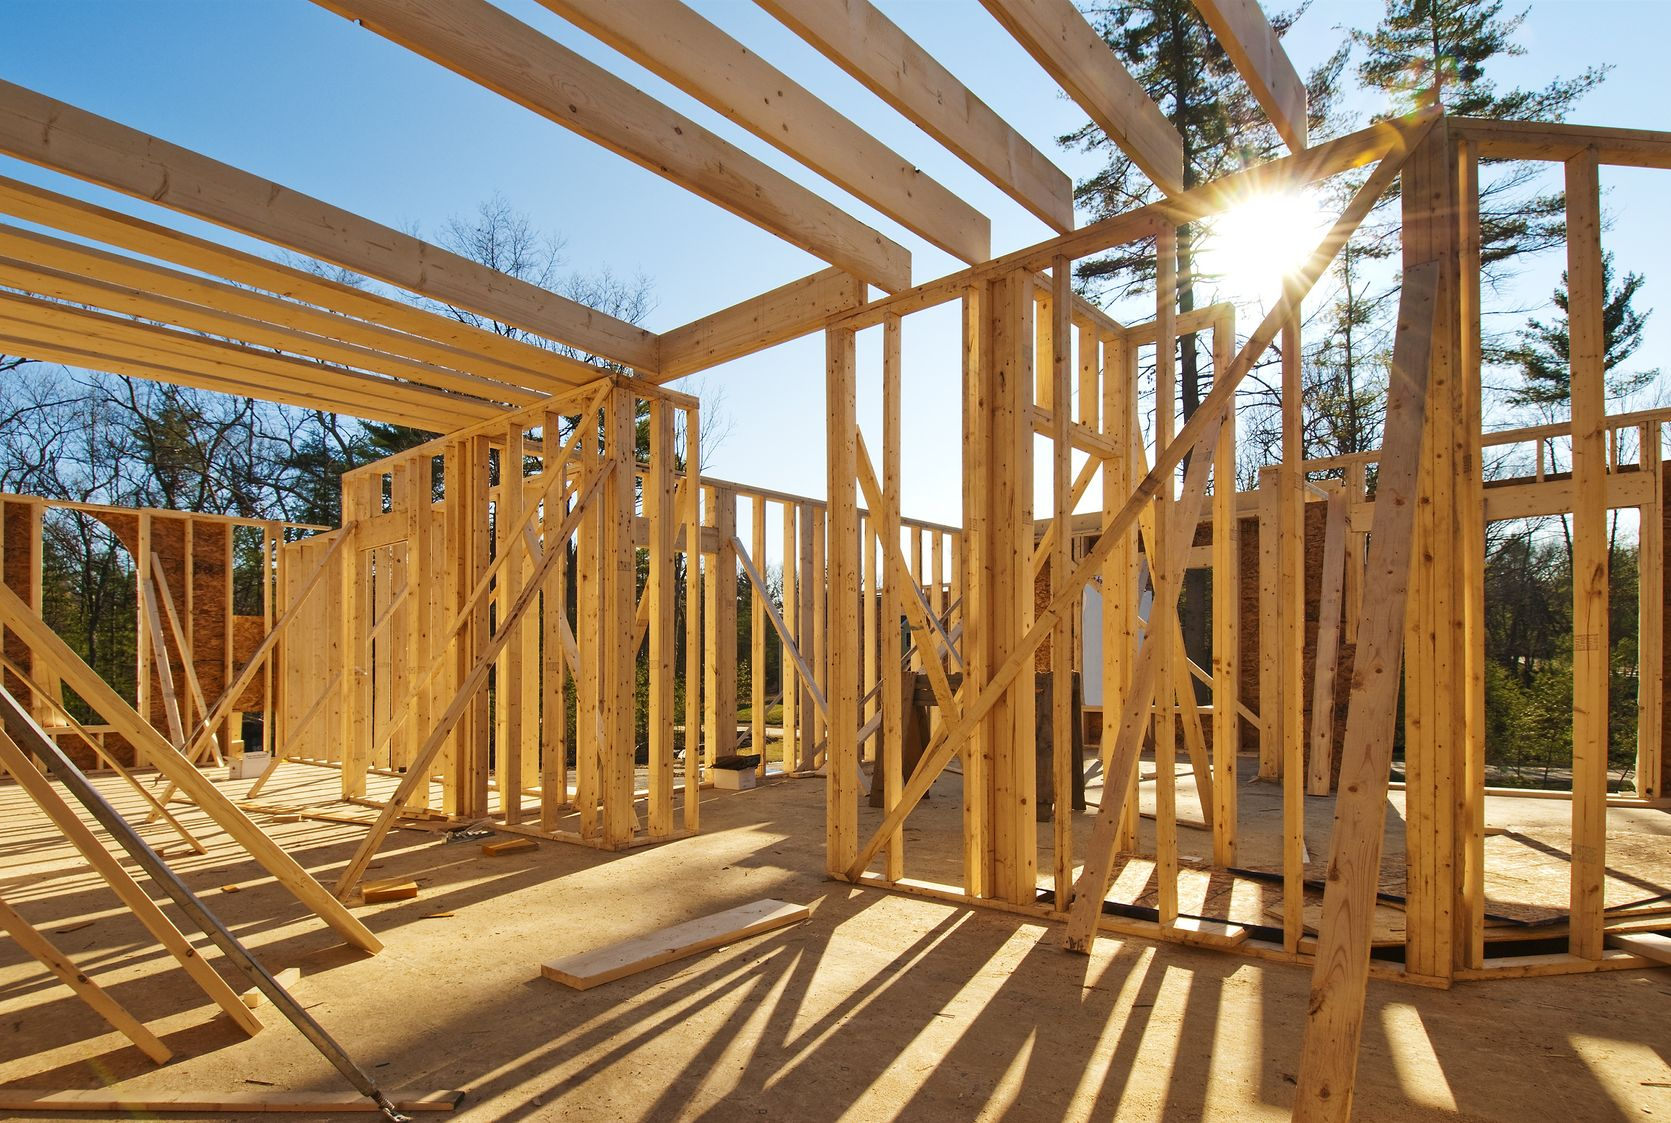 Boulder, Denver, CO. Builders Risk Insurance